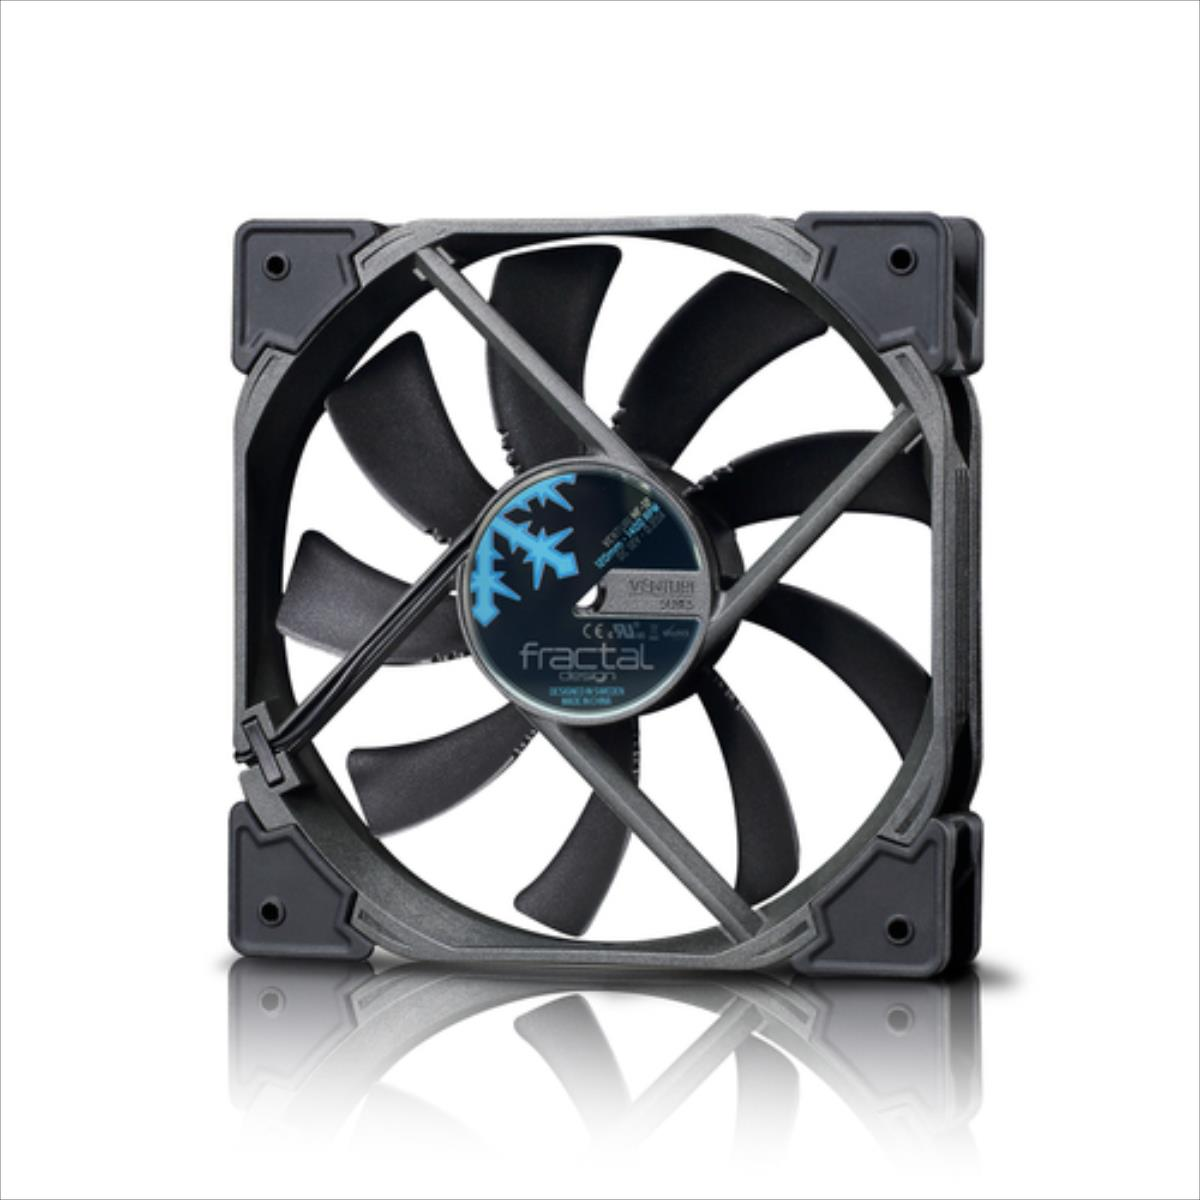 Fractal Design Venturi 140mm fan, PWM ventilators